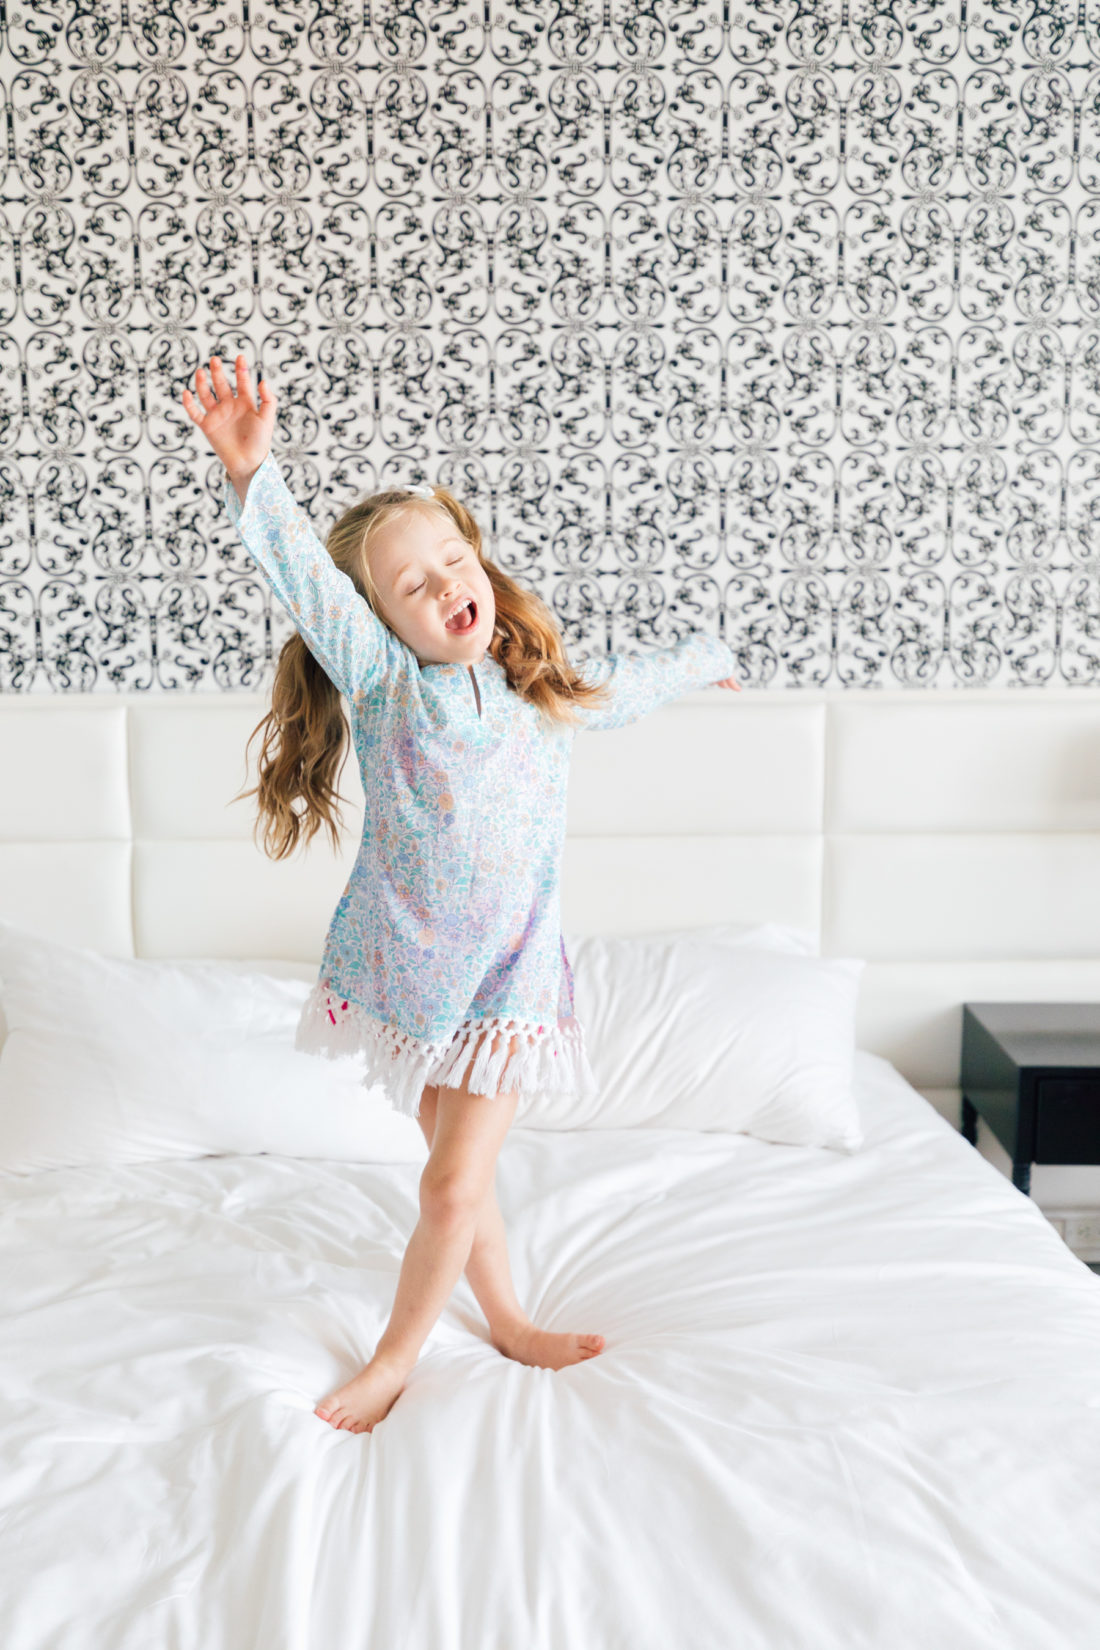 Marlowe Martino poses in her blue floral fringe tunic from the Happily Eva After x Masala Baby collection in a hotel room in Miami